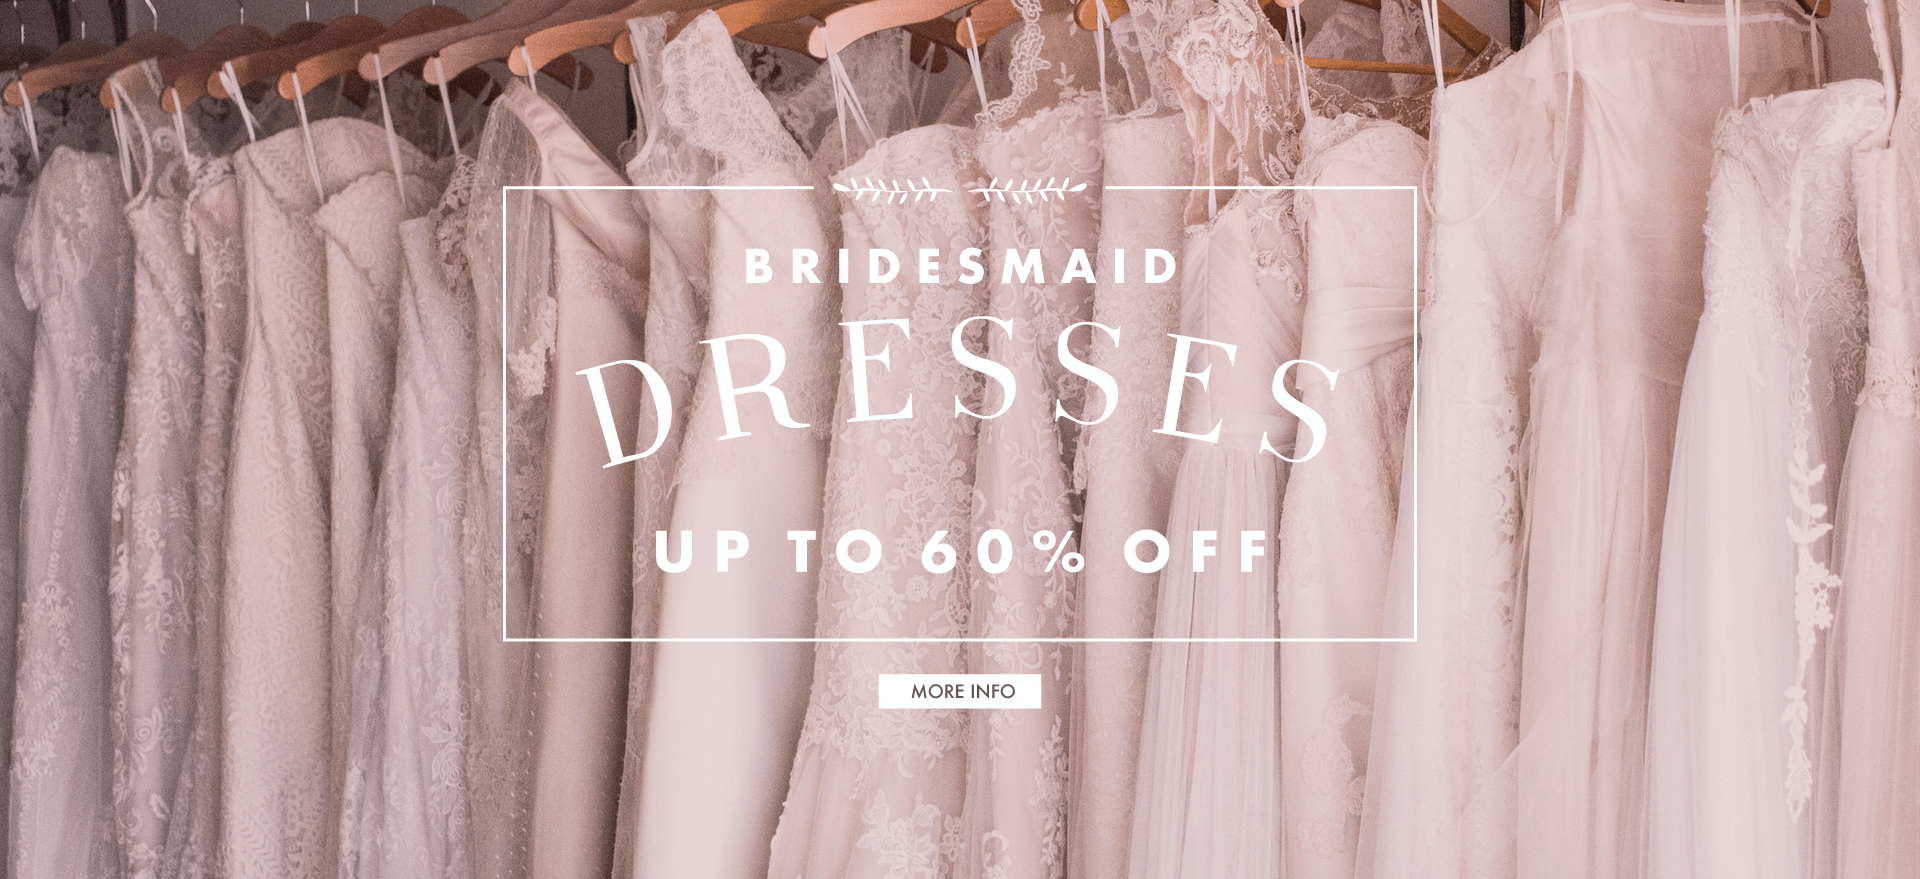 Bridesmaid Dresses Discount Up To 60%